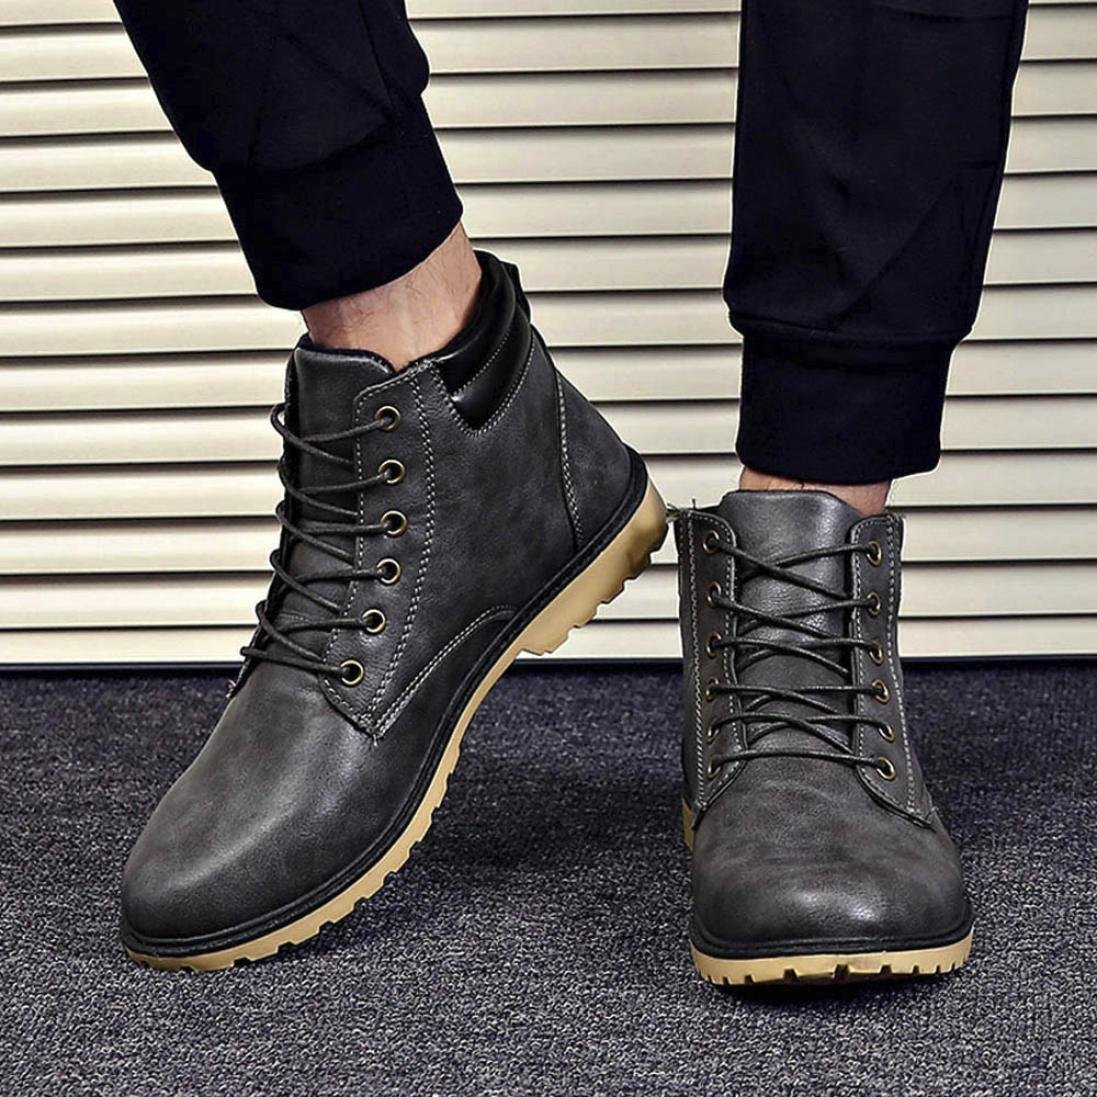 Elevin 2017Men Winter Warm Low Ankle Trim Flat Ankle Flat Martin Ankle Boots Shoes TM